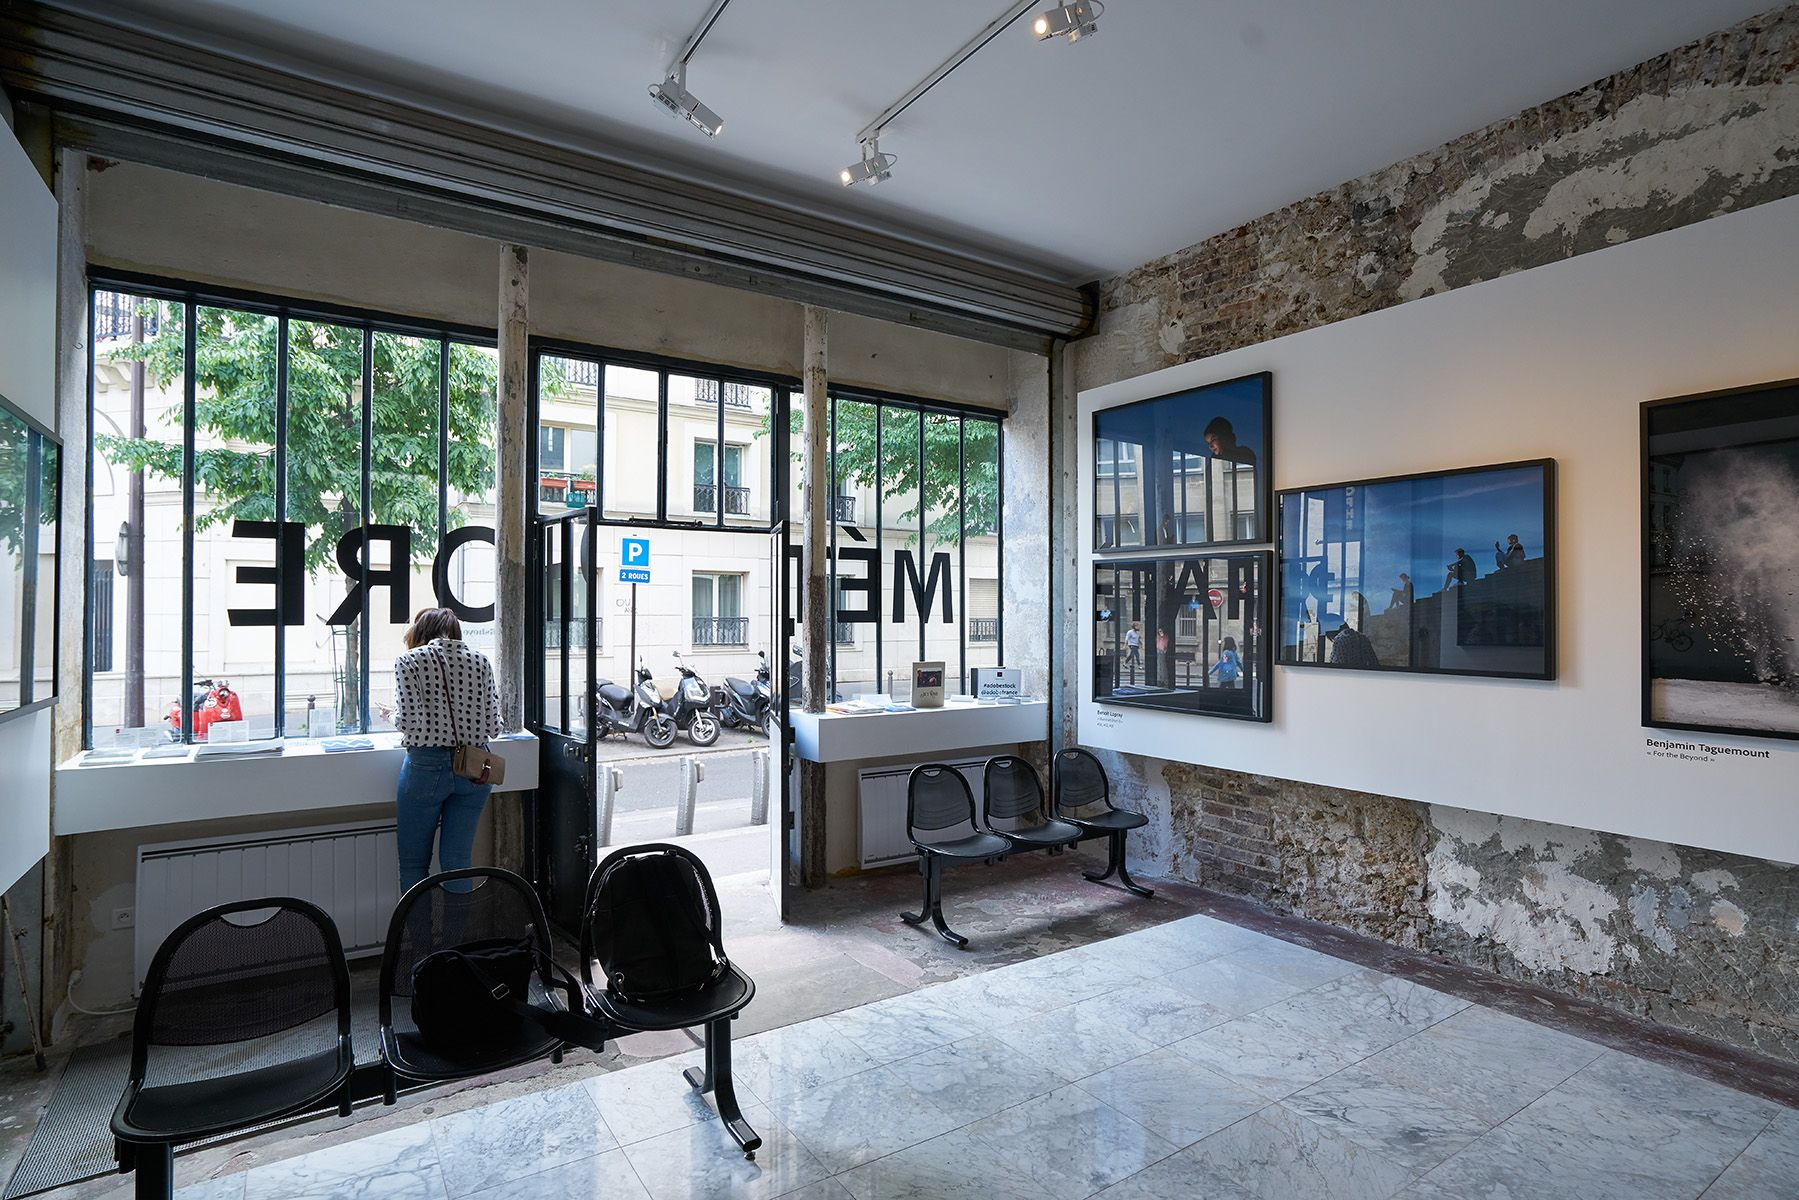 Collective exhibition with Adobe at the Fisheye Gallery in Paris (2017)